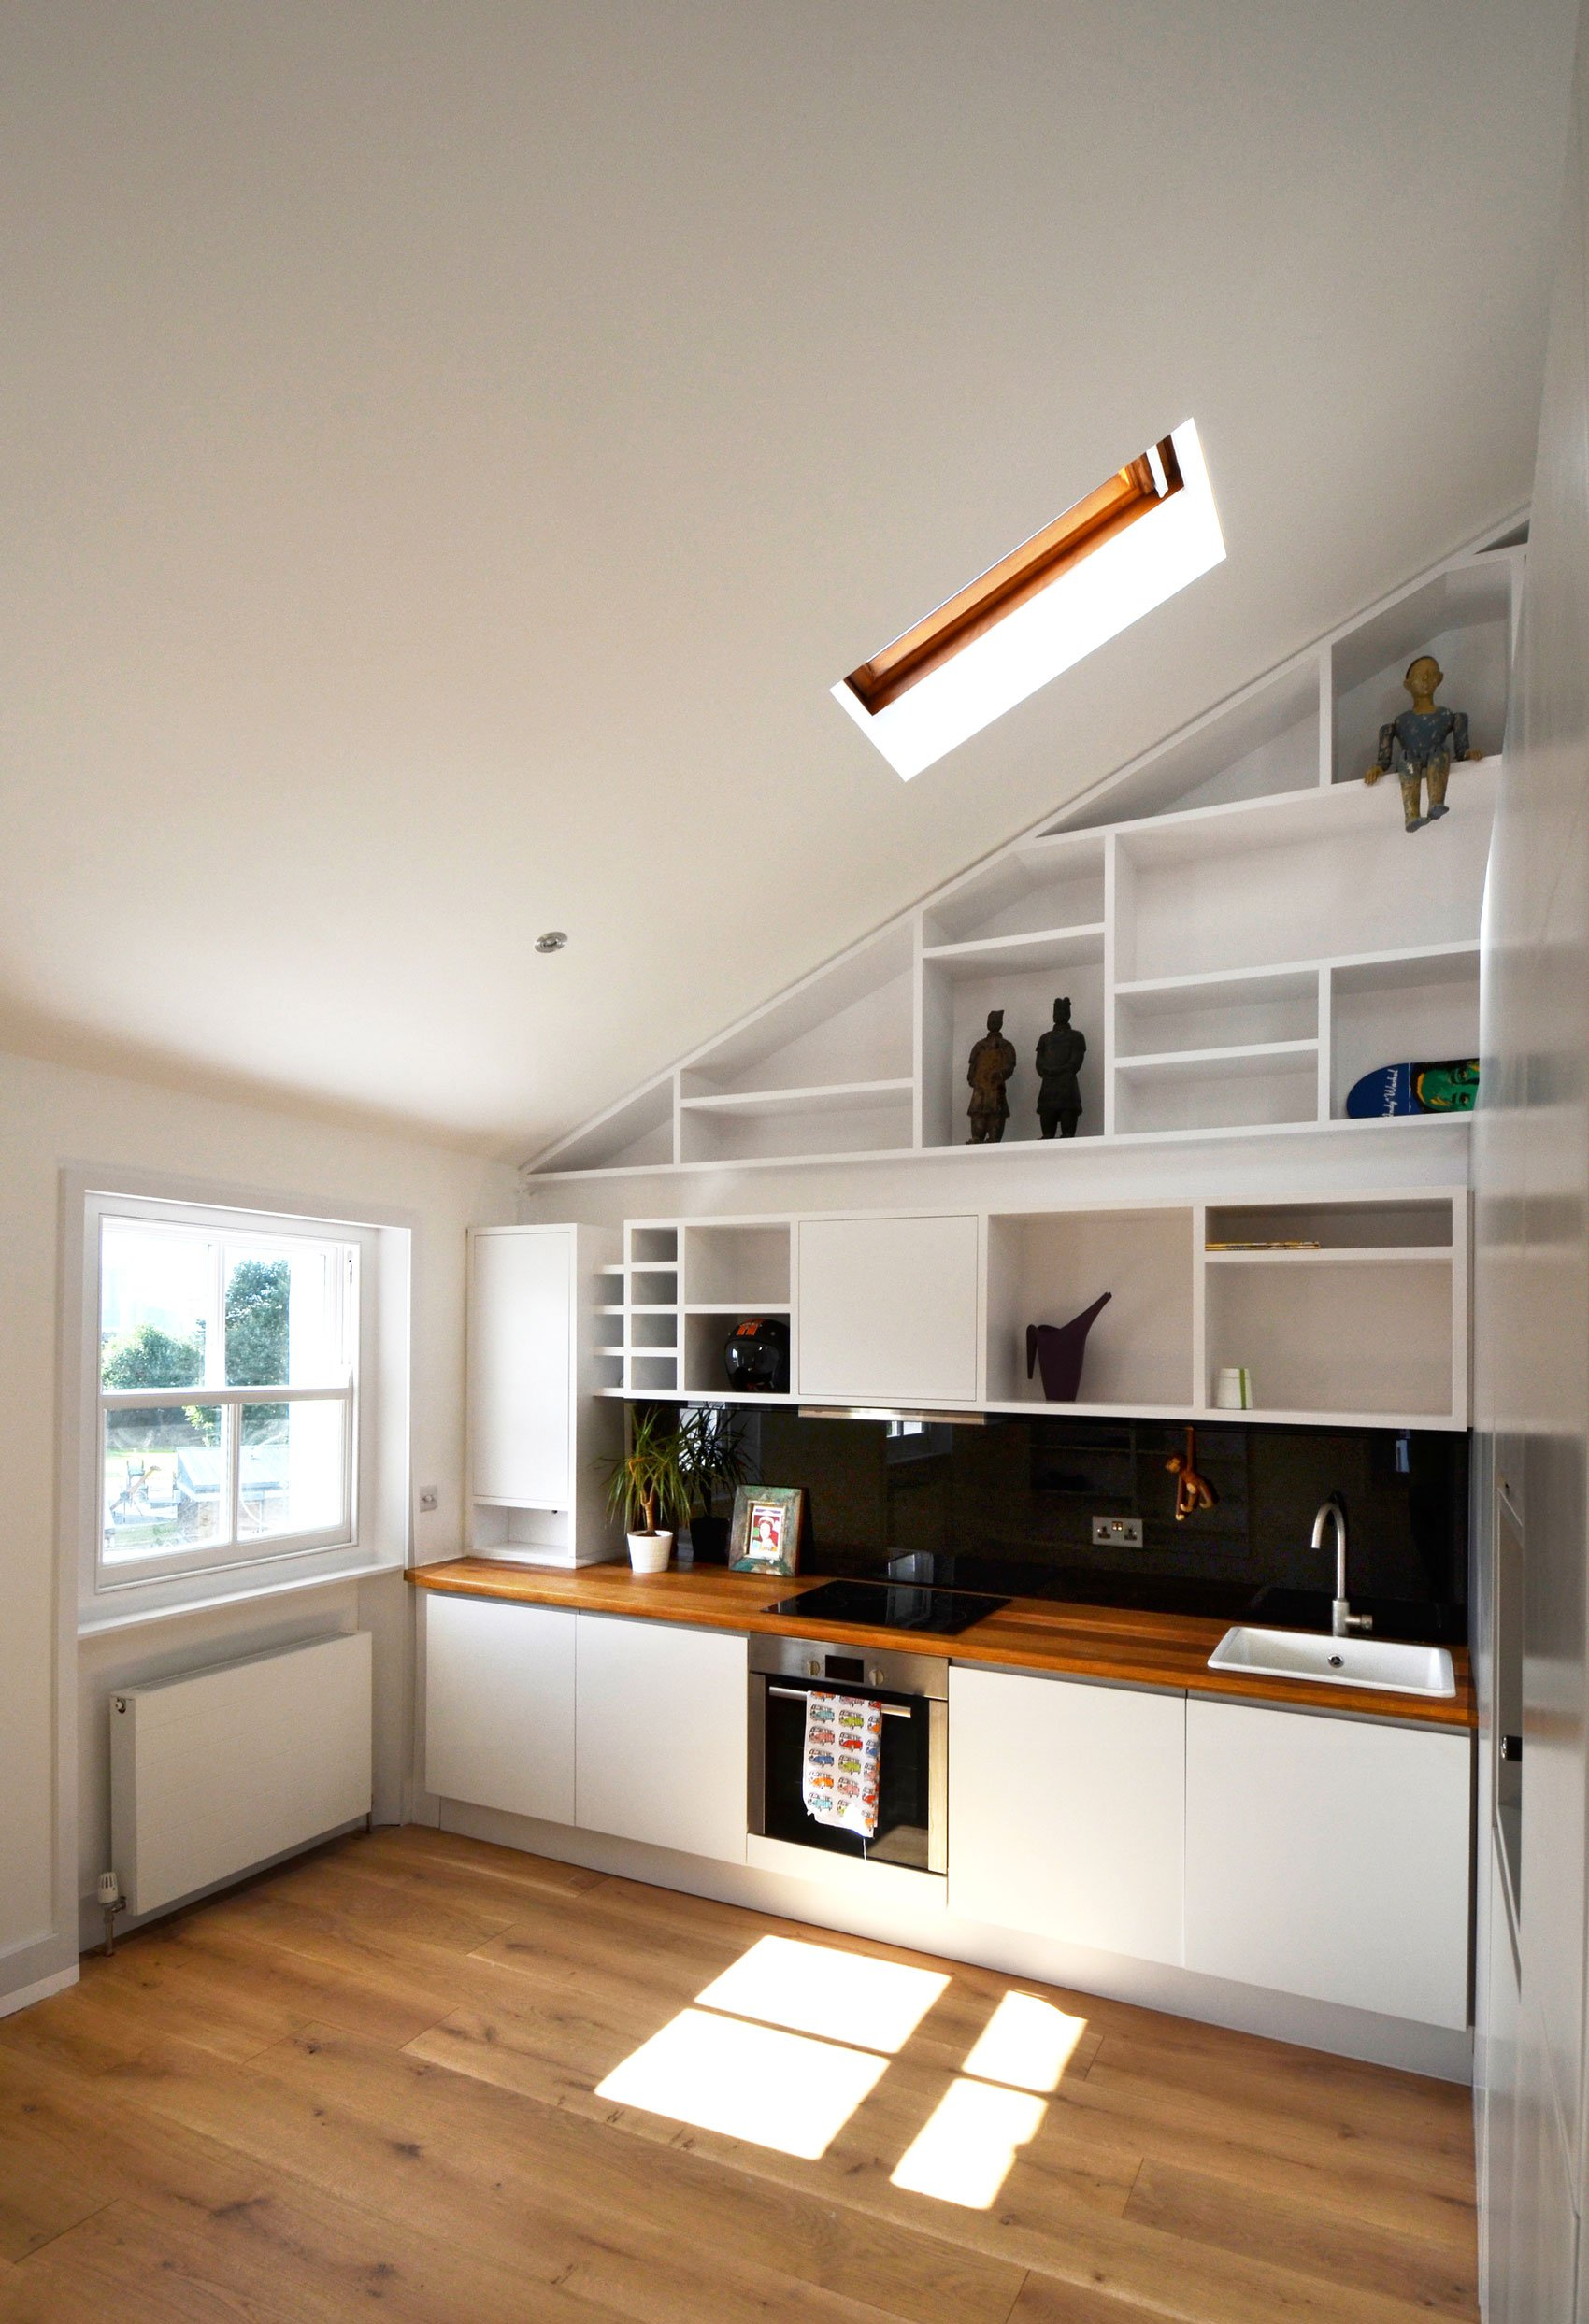 loft-space-in-camden-06